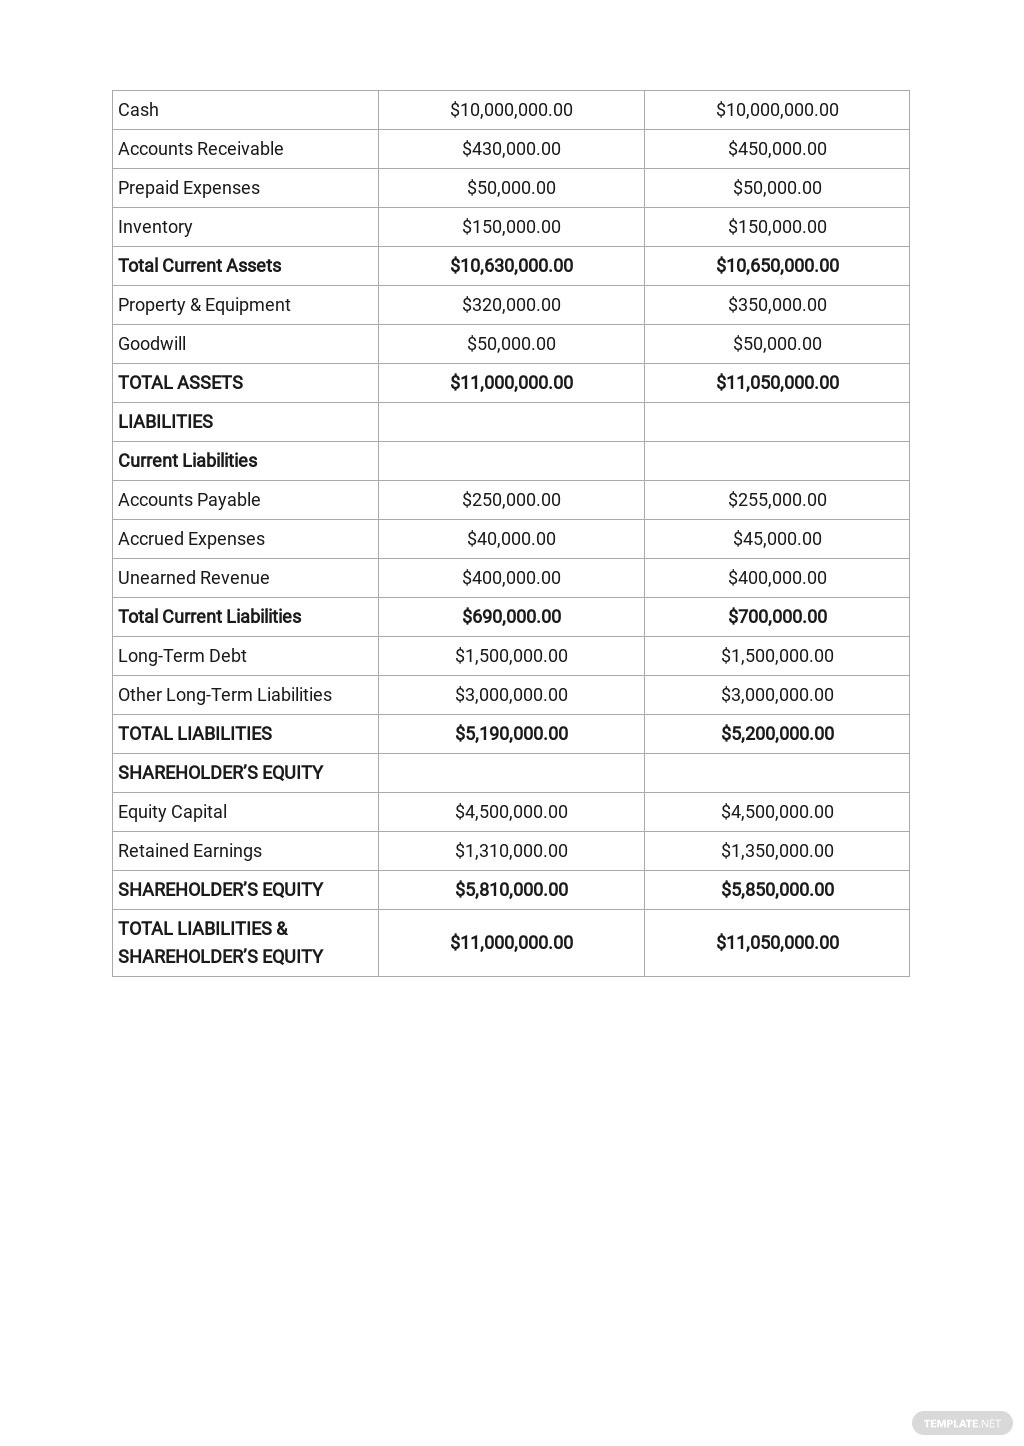 Free Commercial Real Estate Business Plan Template 8.jpe